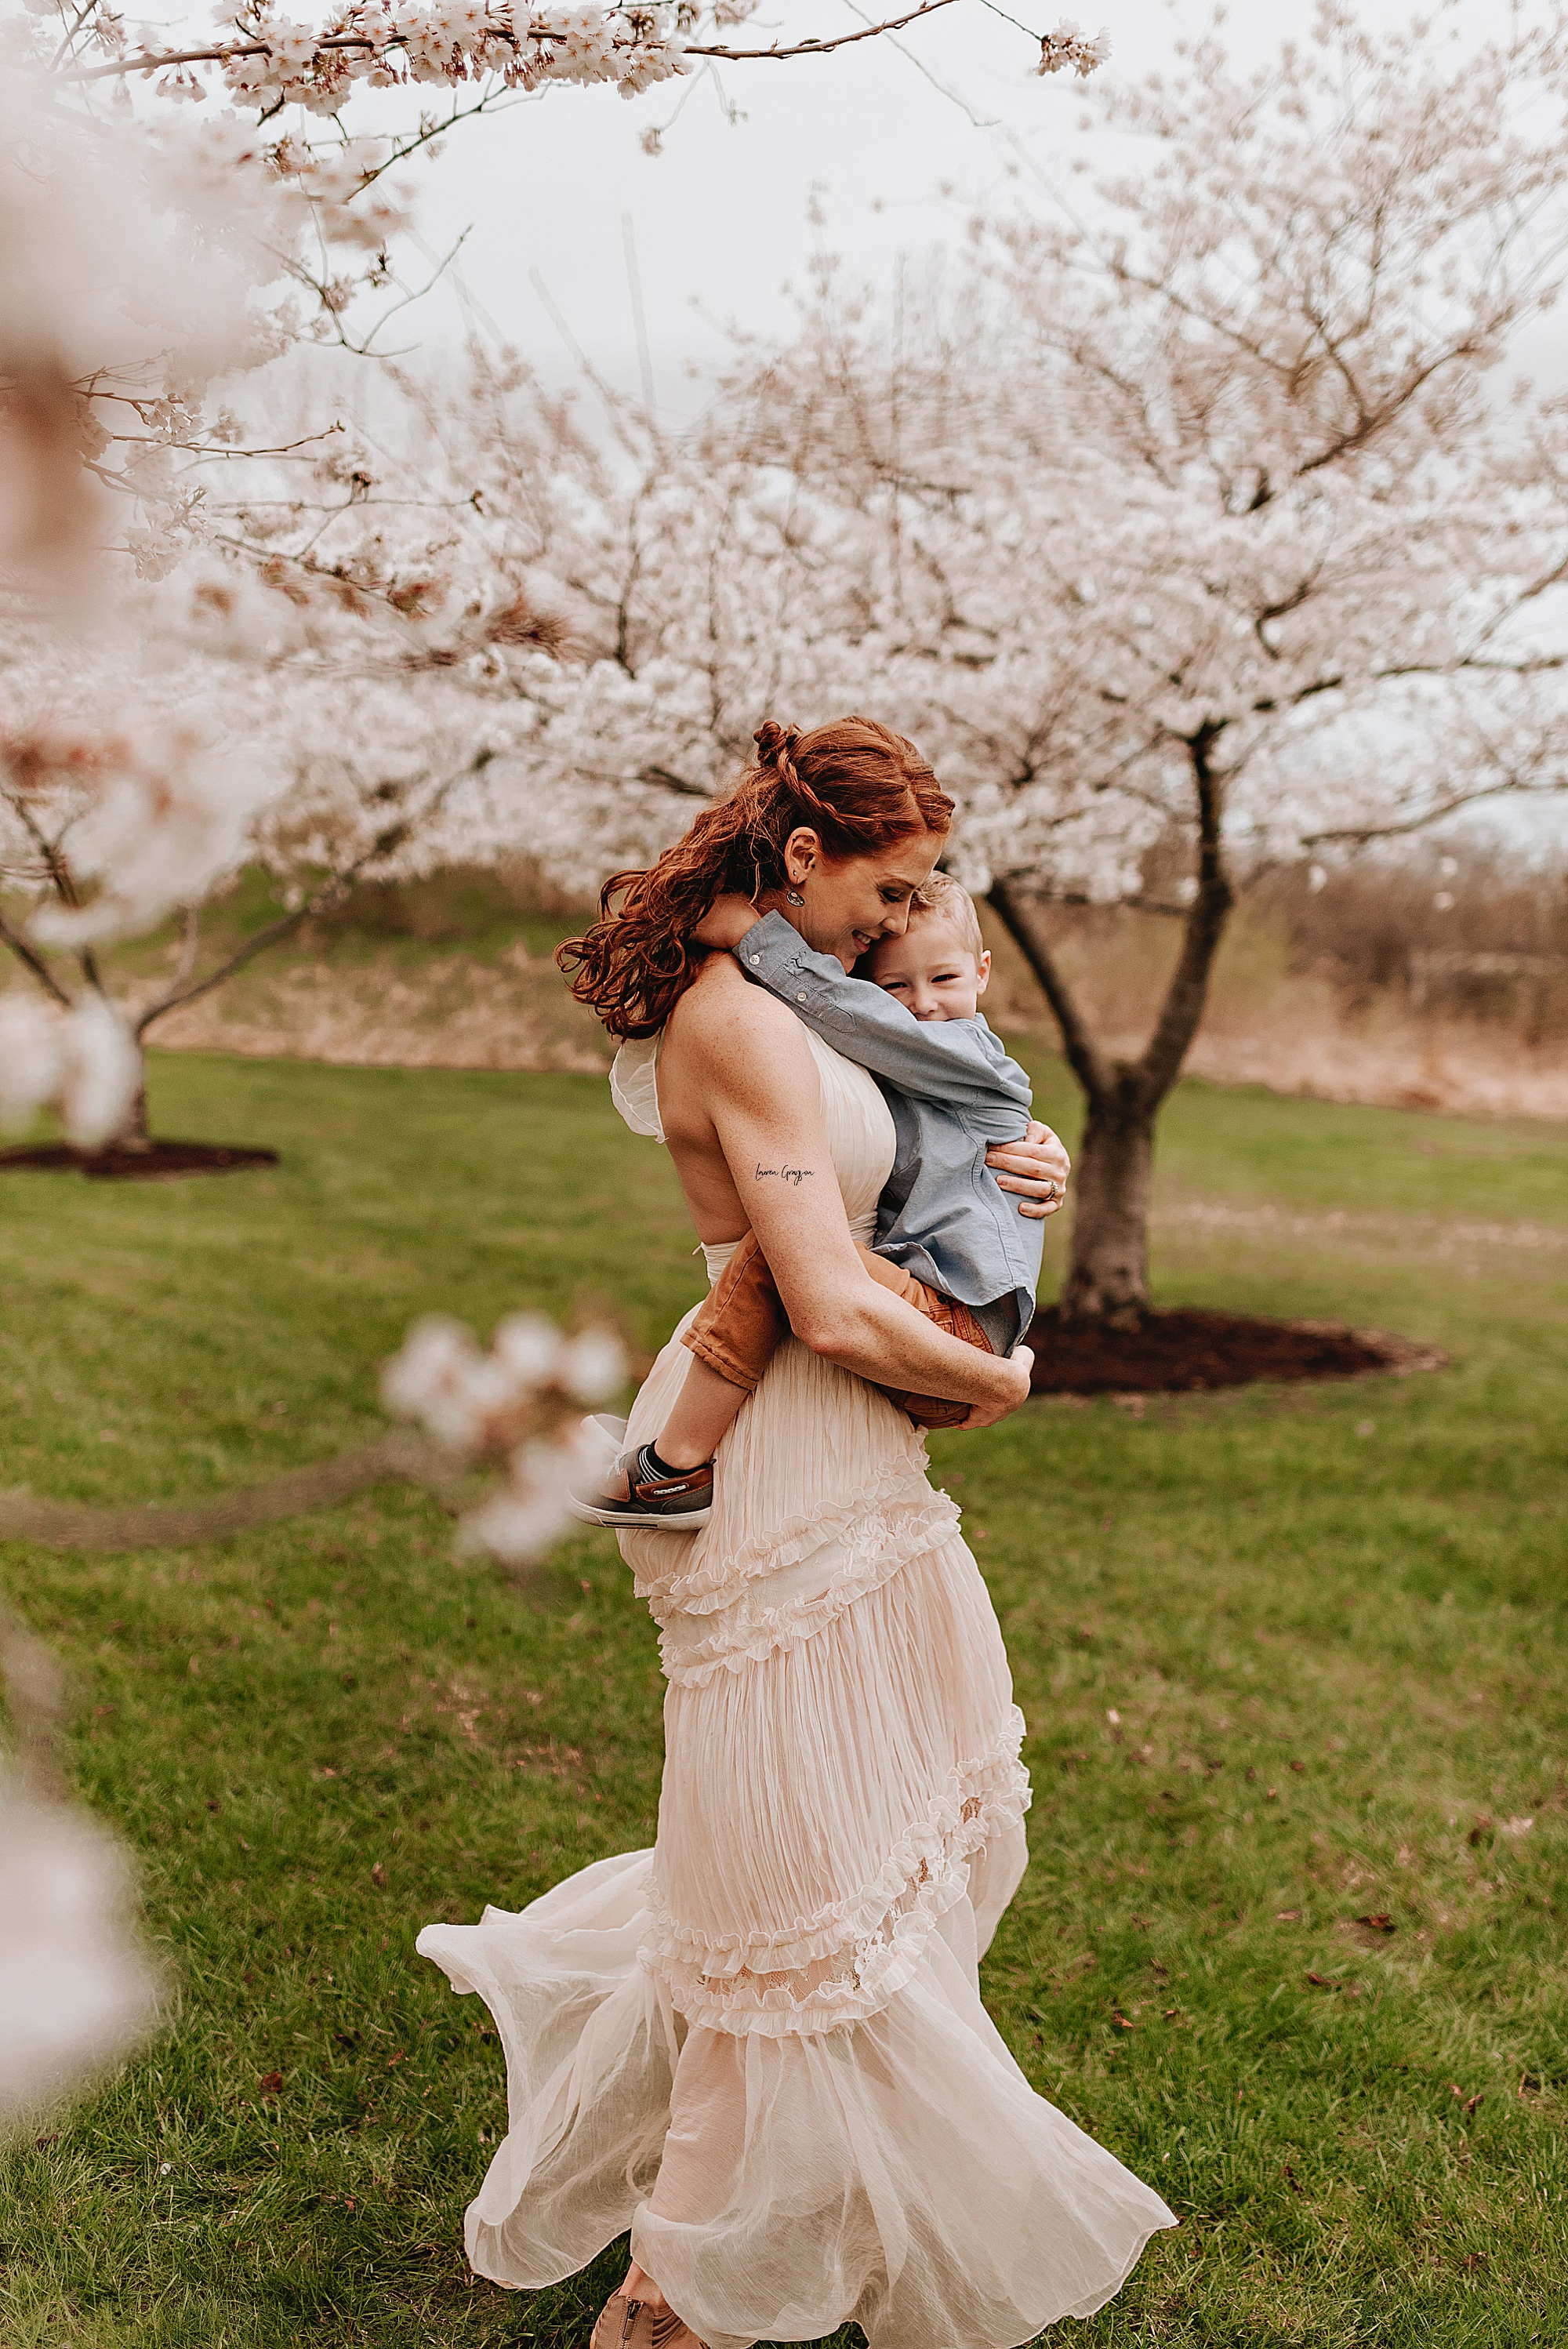 lauren-grayson-photography-cleveland-ohio-motherhood-family-child-photo-session-cherry-blossoms_0008.jpg